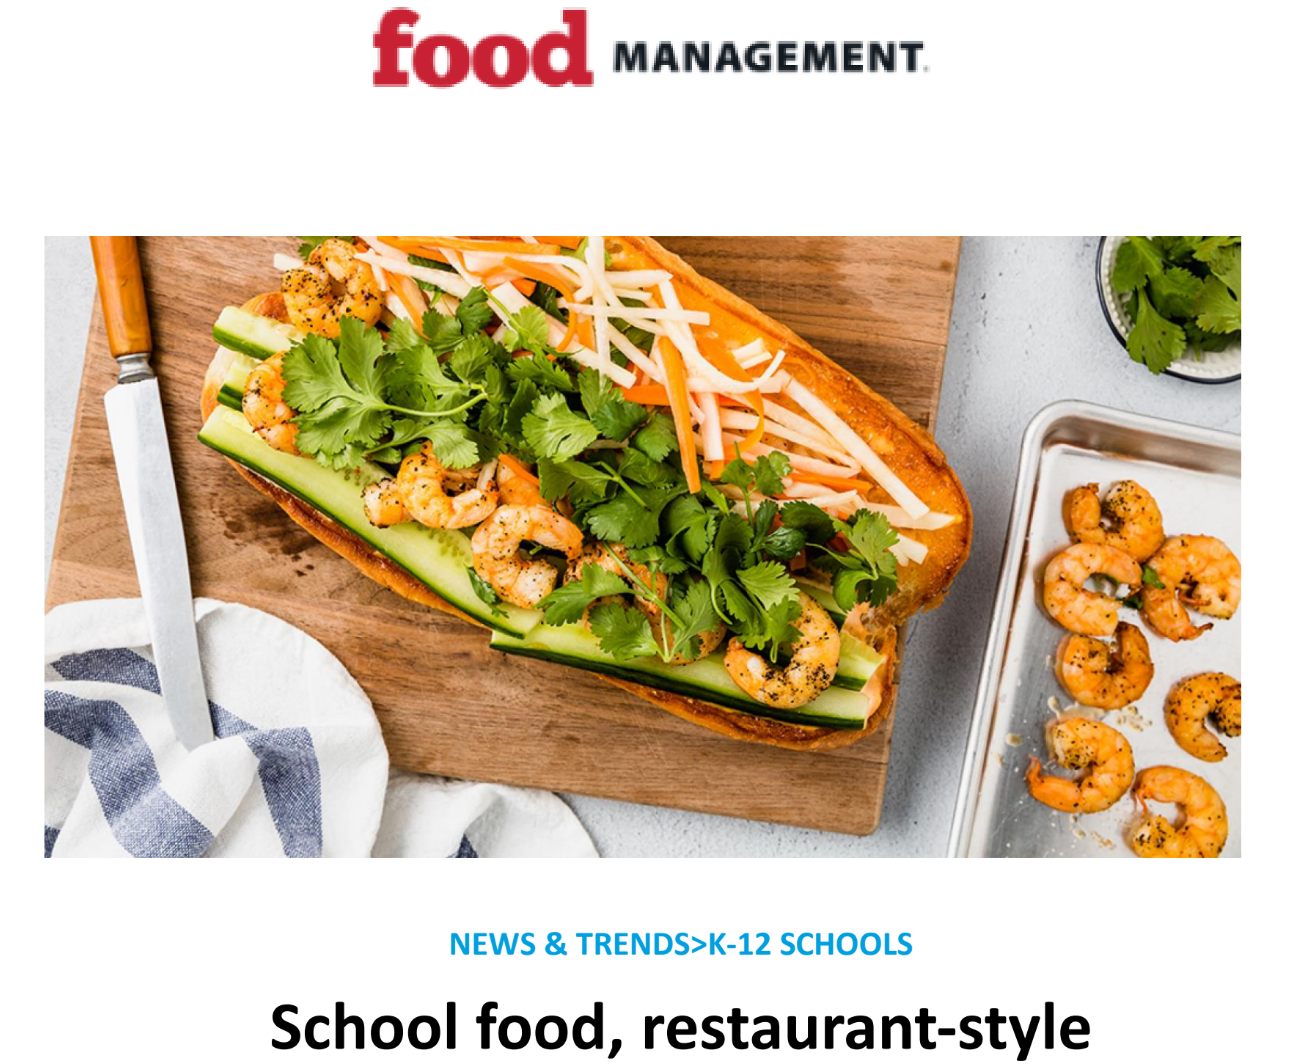 Food management article